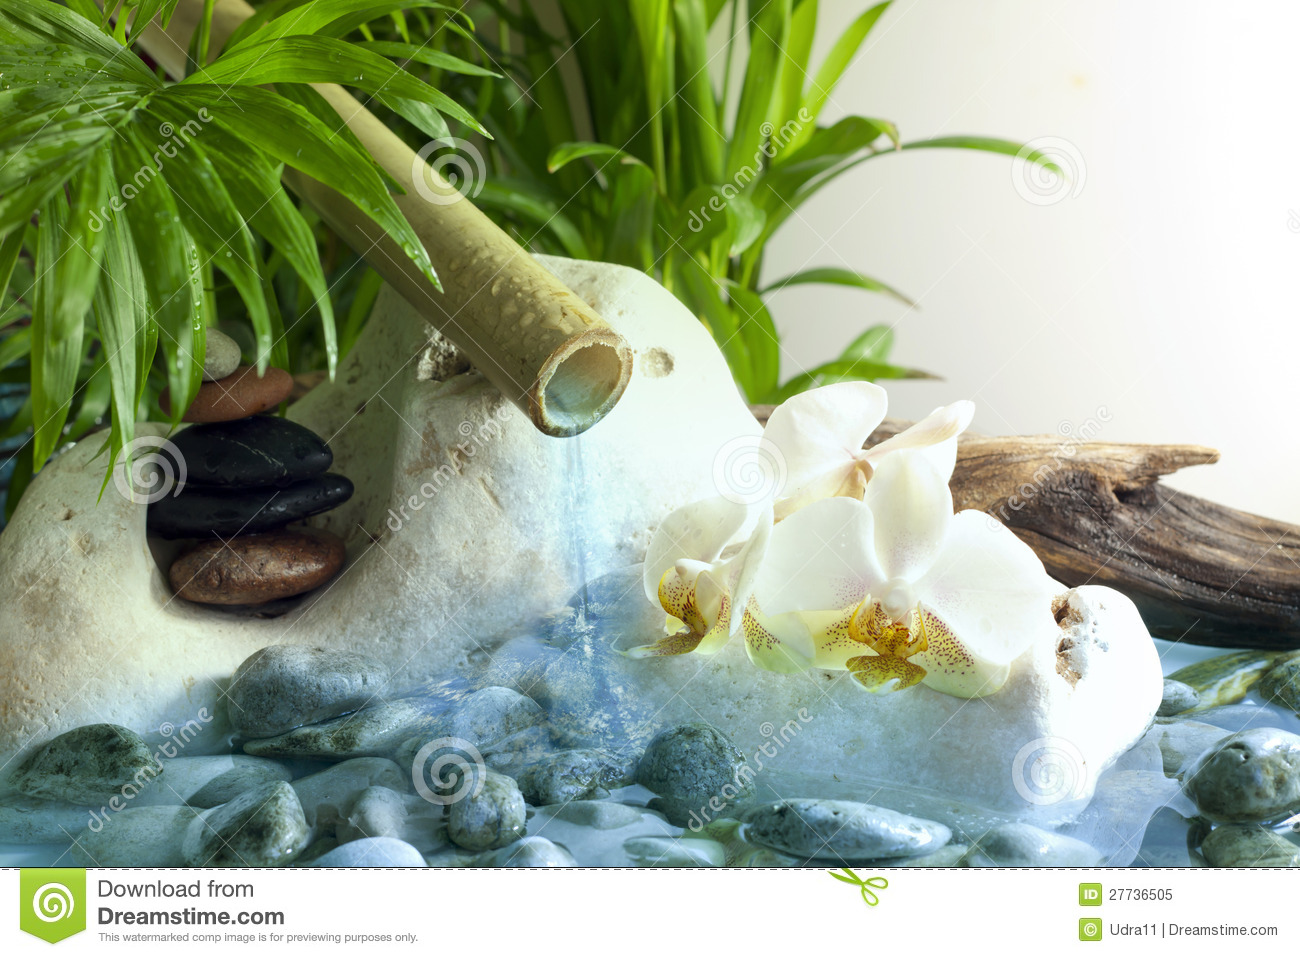 Water Falling Wallpaper Desktop Orchids And Zen Stones With Falling Water Stock Image